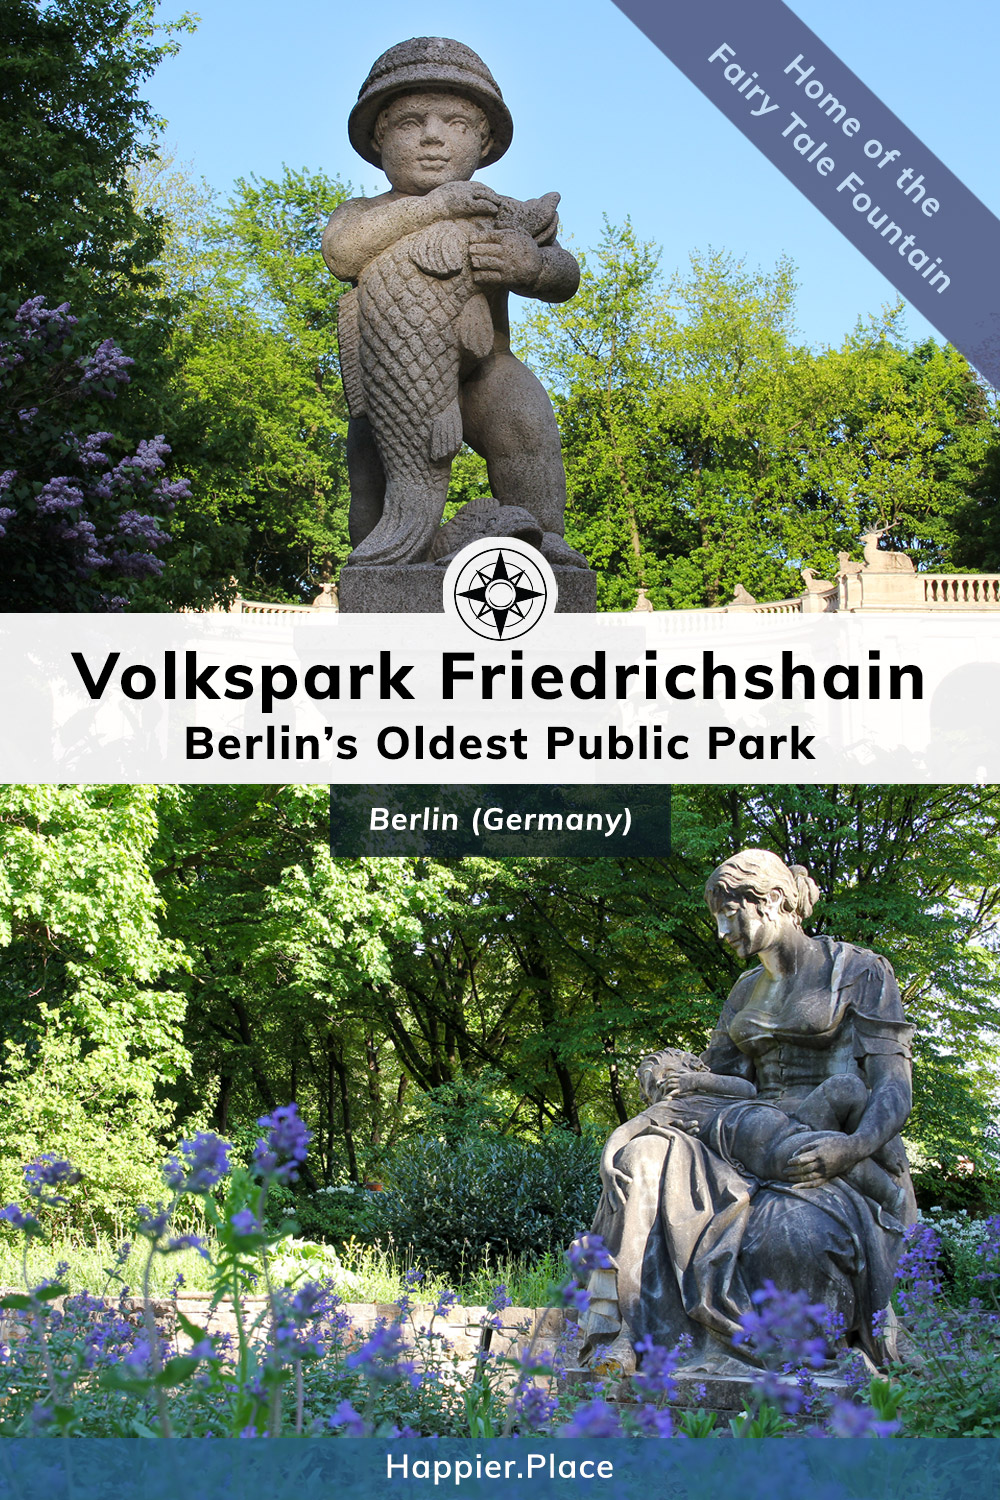 Berlins Oldest Park: Volkspark Friedrichshain, home of the Fairy Tale Fountain (Maerchenbrunnen) and many more statues, memorials, flowers and beer gardens...